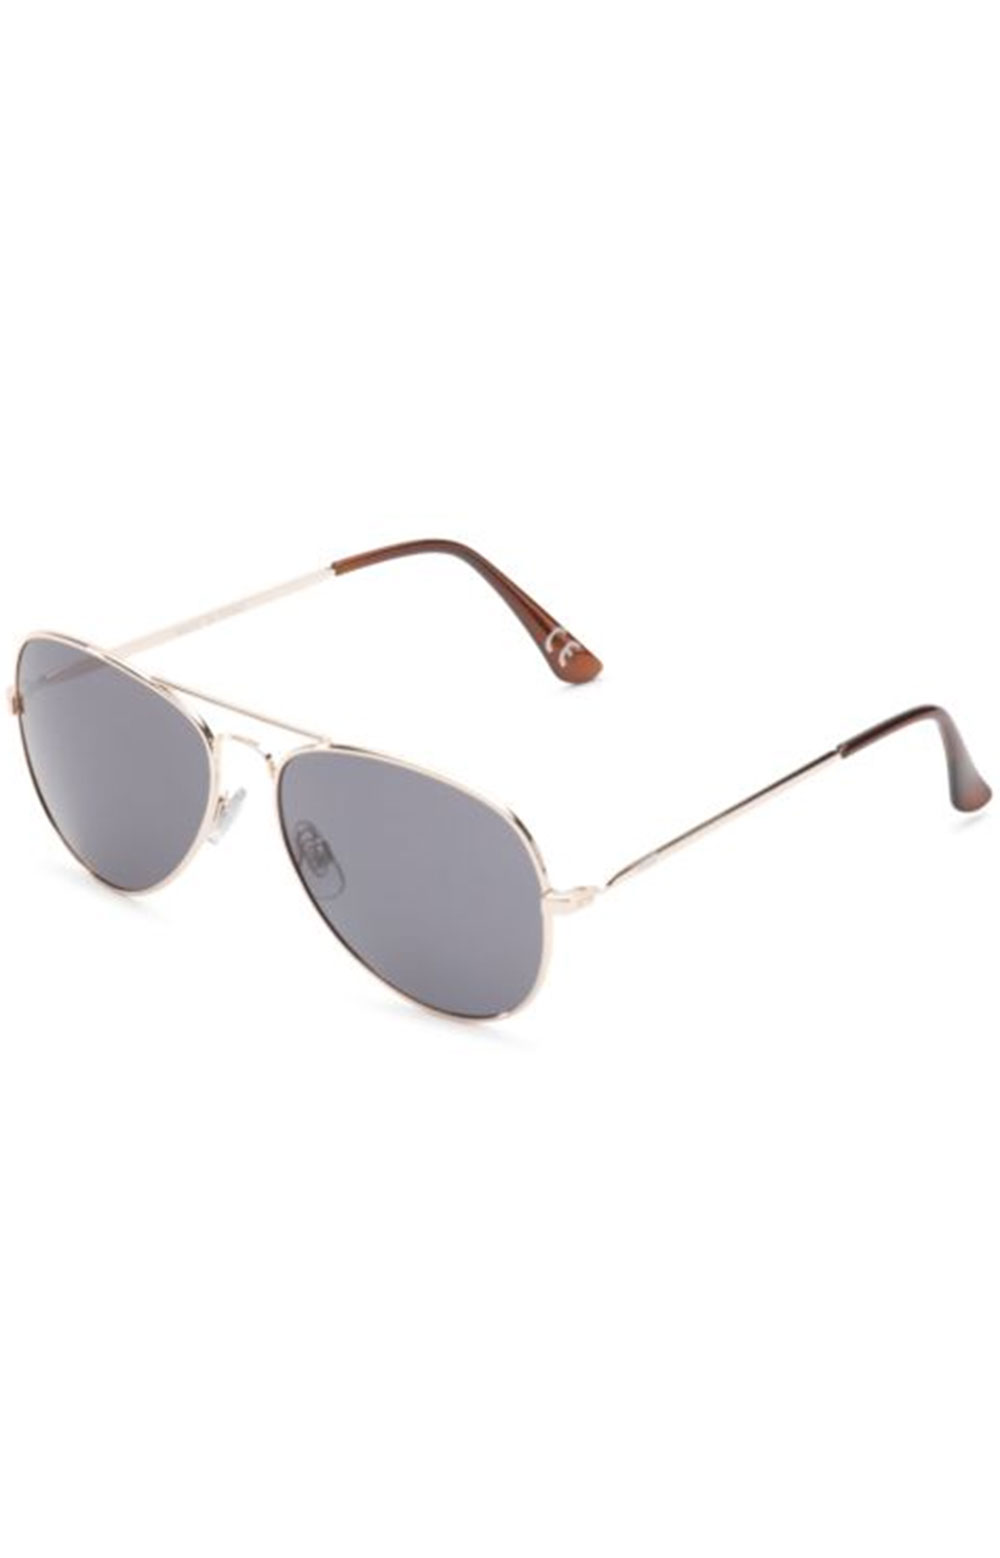 Fly South Sunglasses - Gold